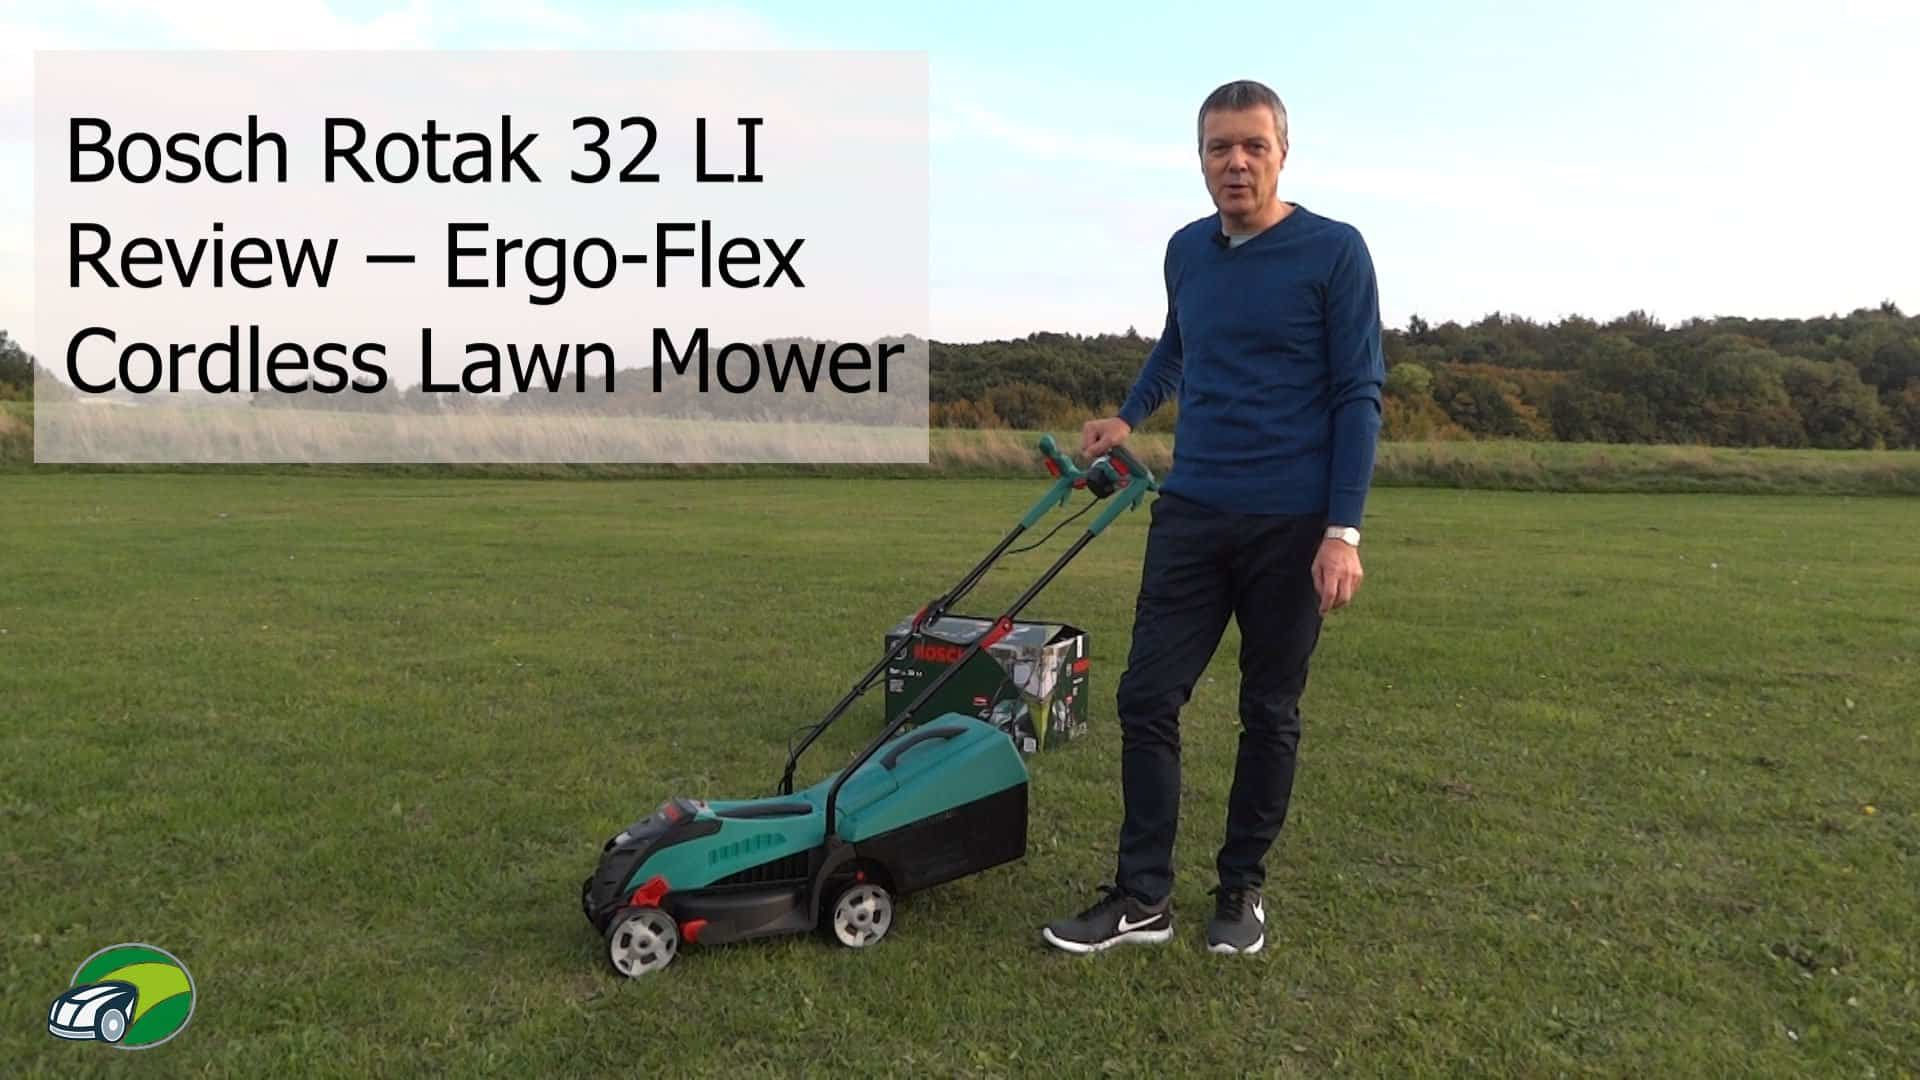 Bosch-Rotak-32-Li Review